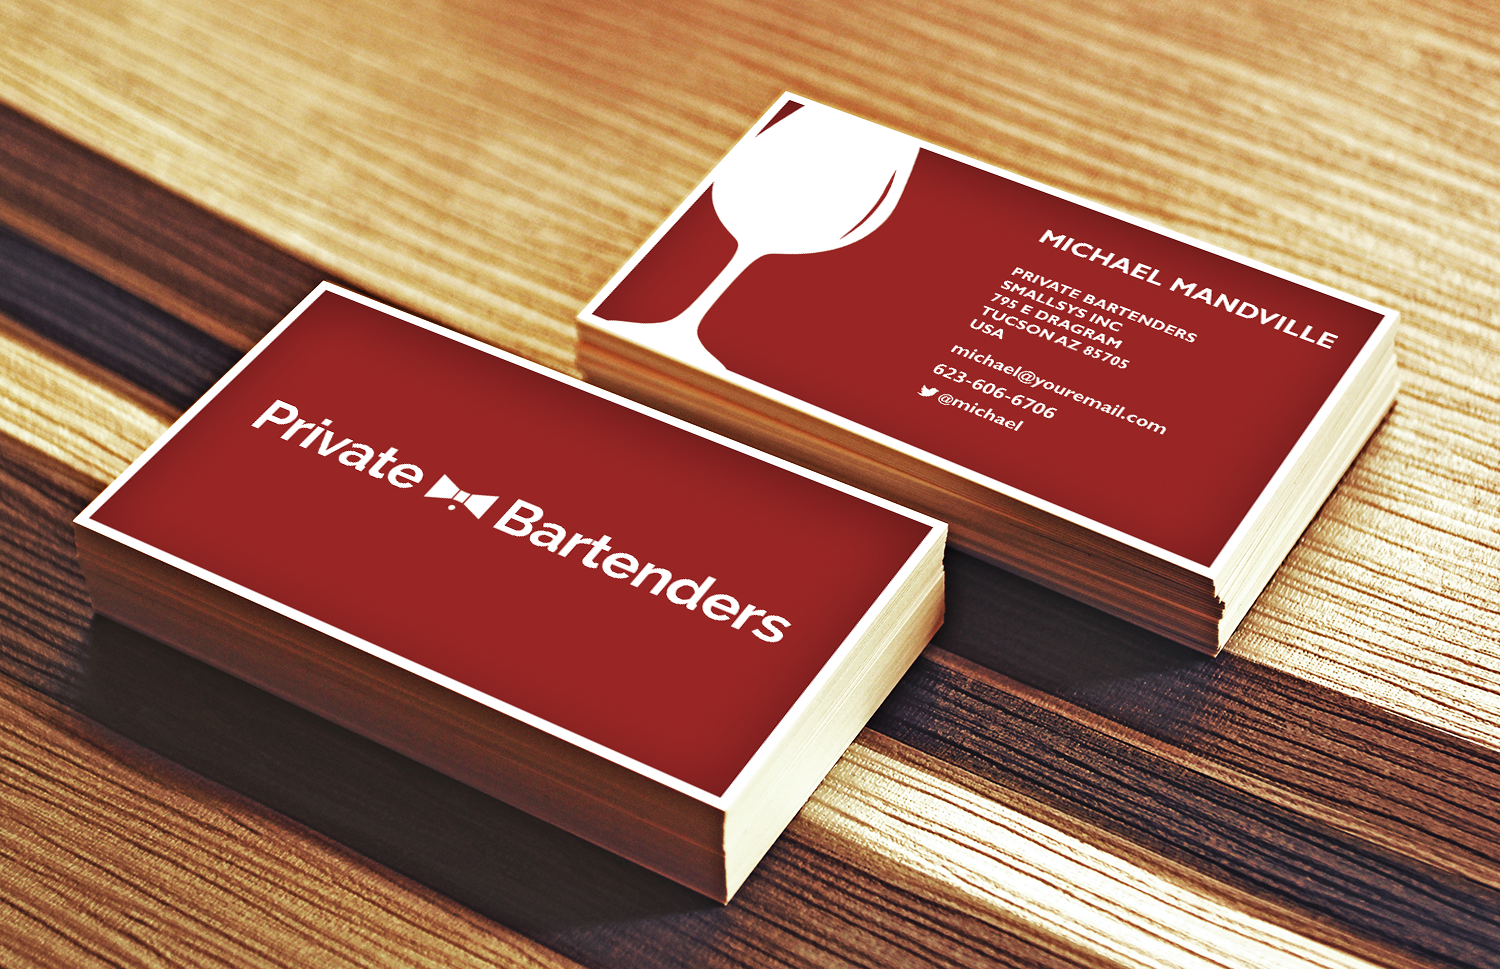 Serious modern events business card design for a company by business card design by vyomputra for this project design 7214074 colourmoves